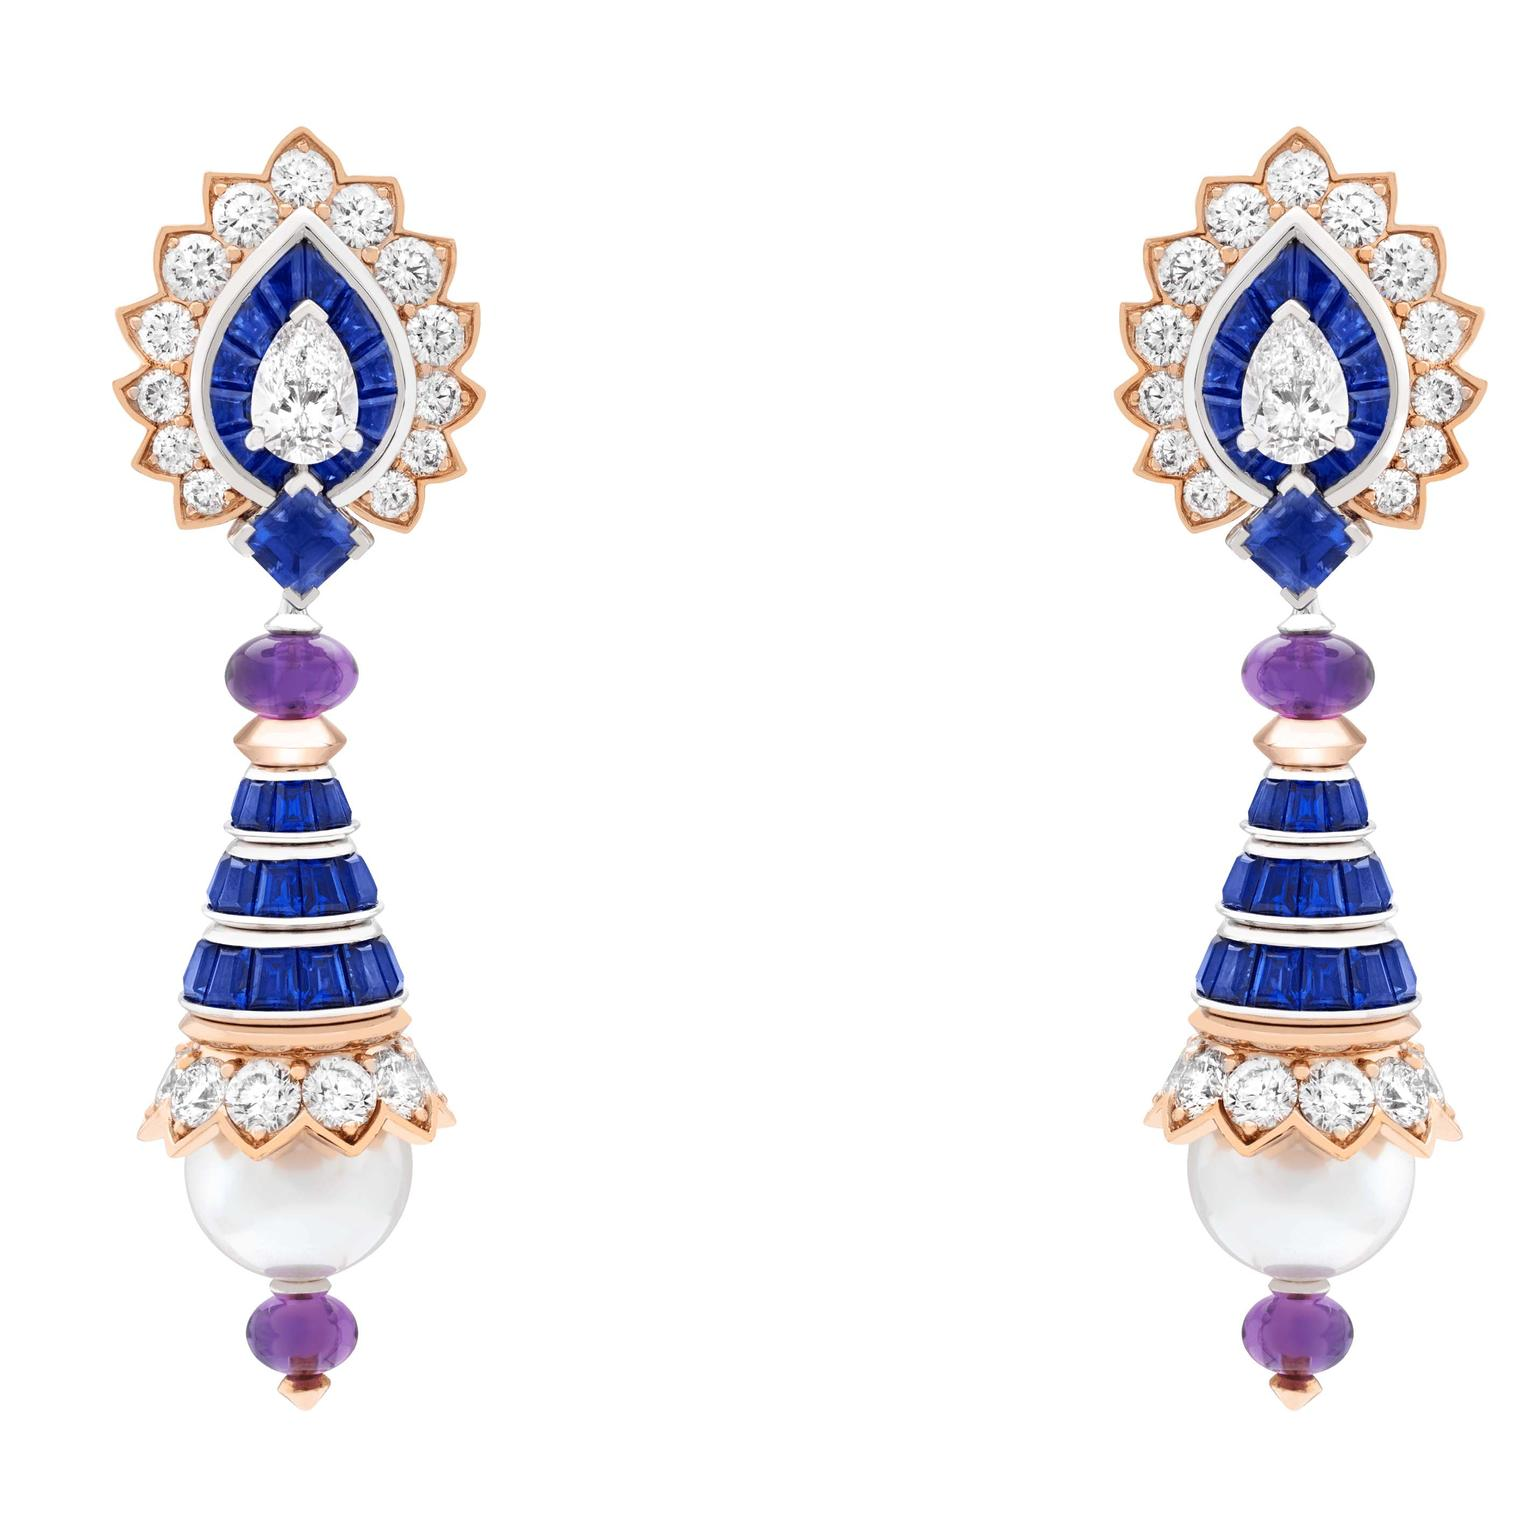 Van Cleef & Arpels Balletti earrings Romeo and Juliet jewels